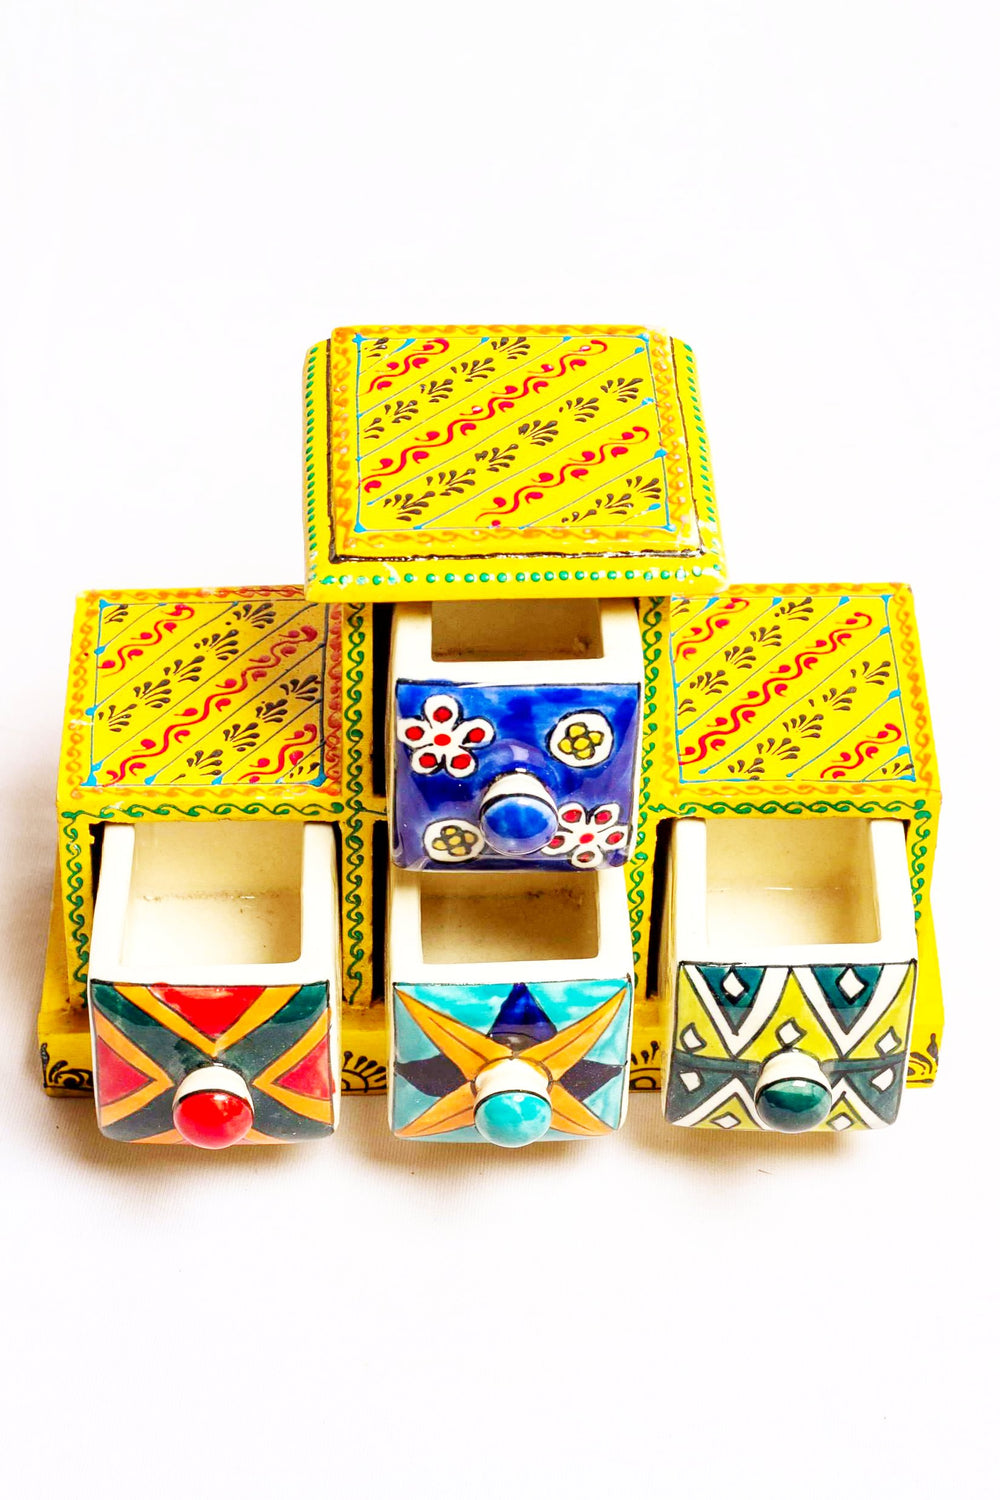 Four drawers in a yellow framed wooden box with painted motifs, with four ceramic drawers